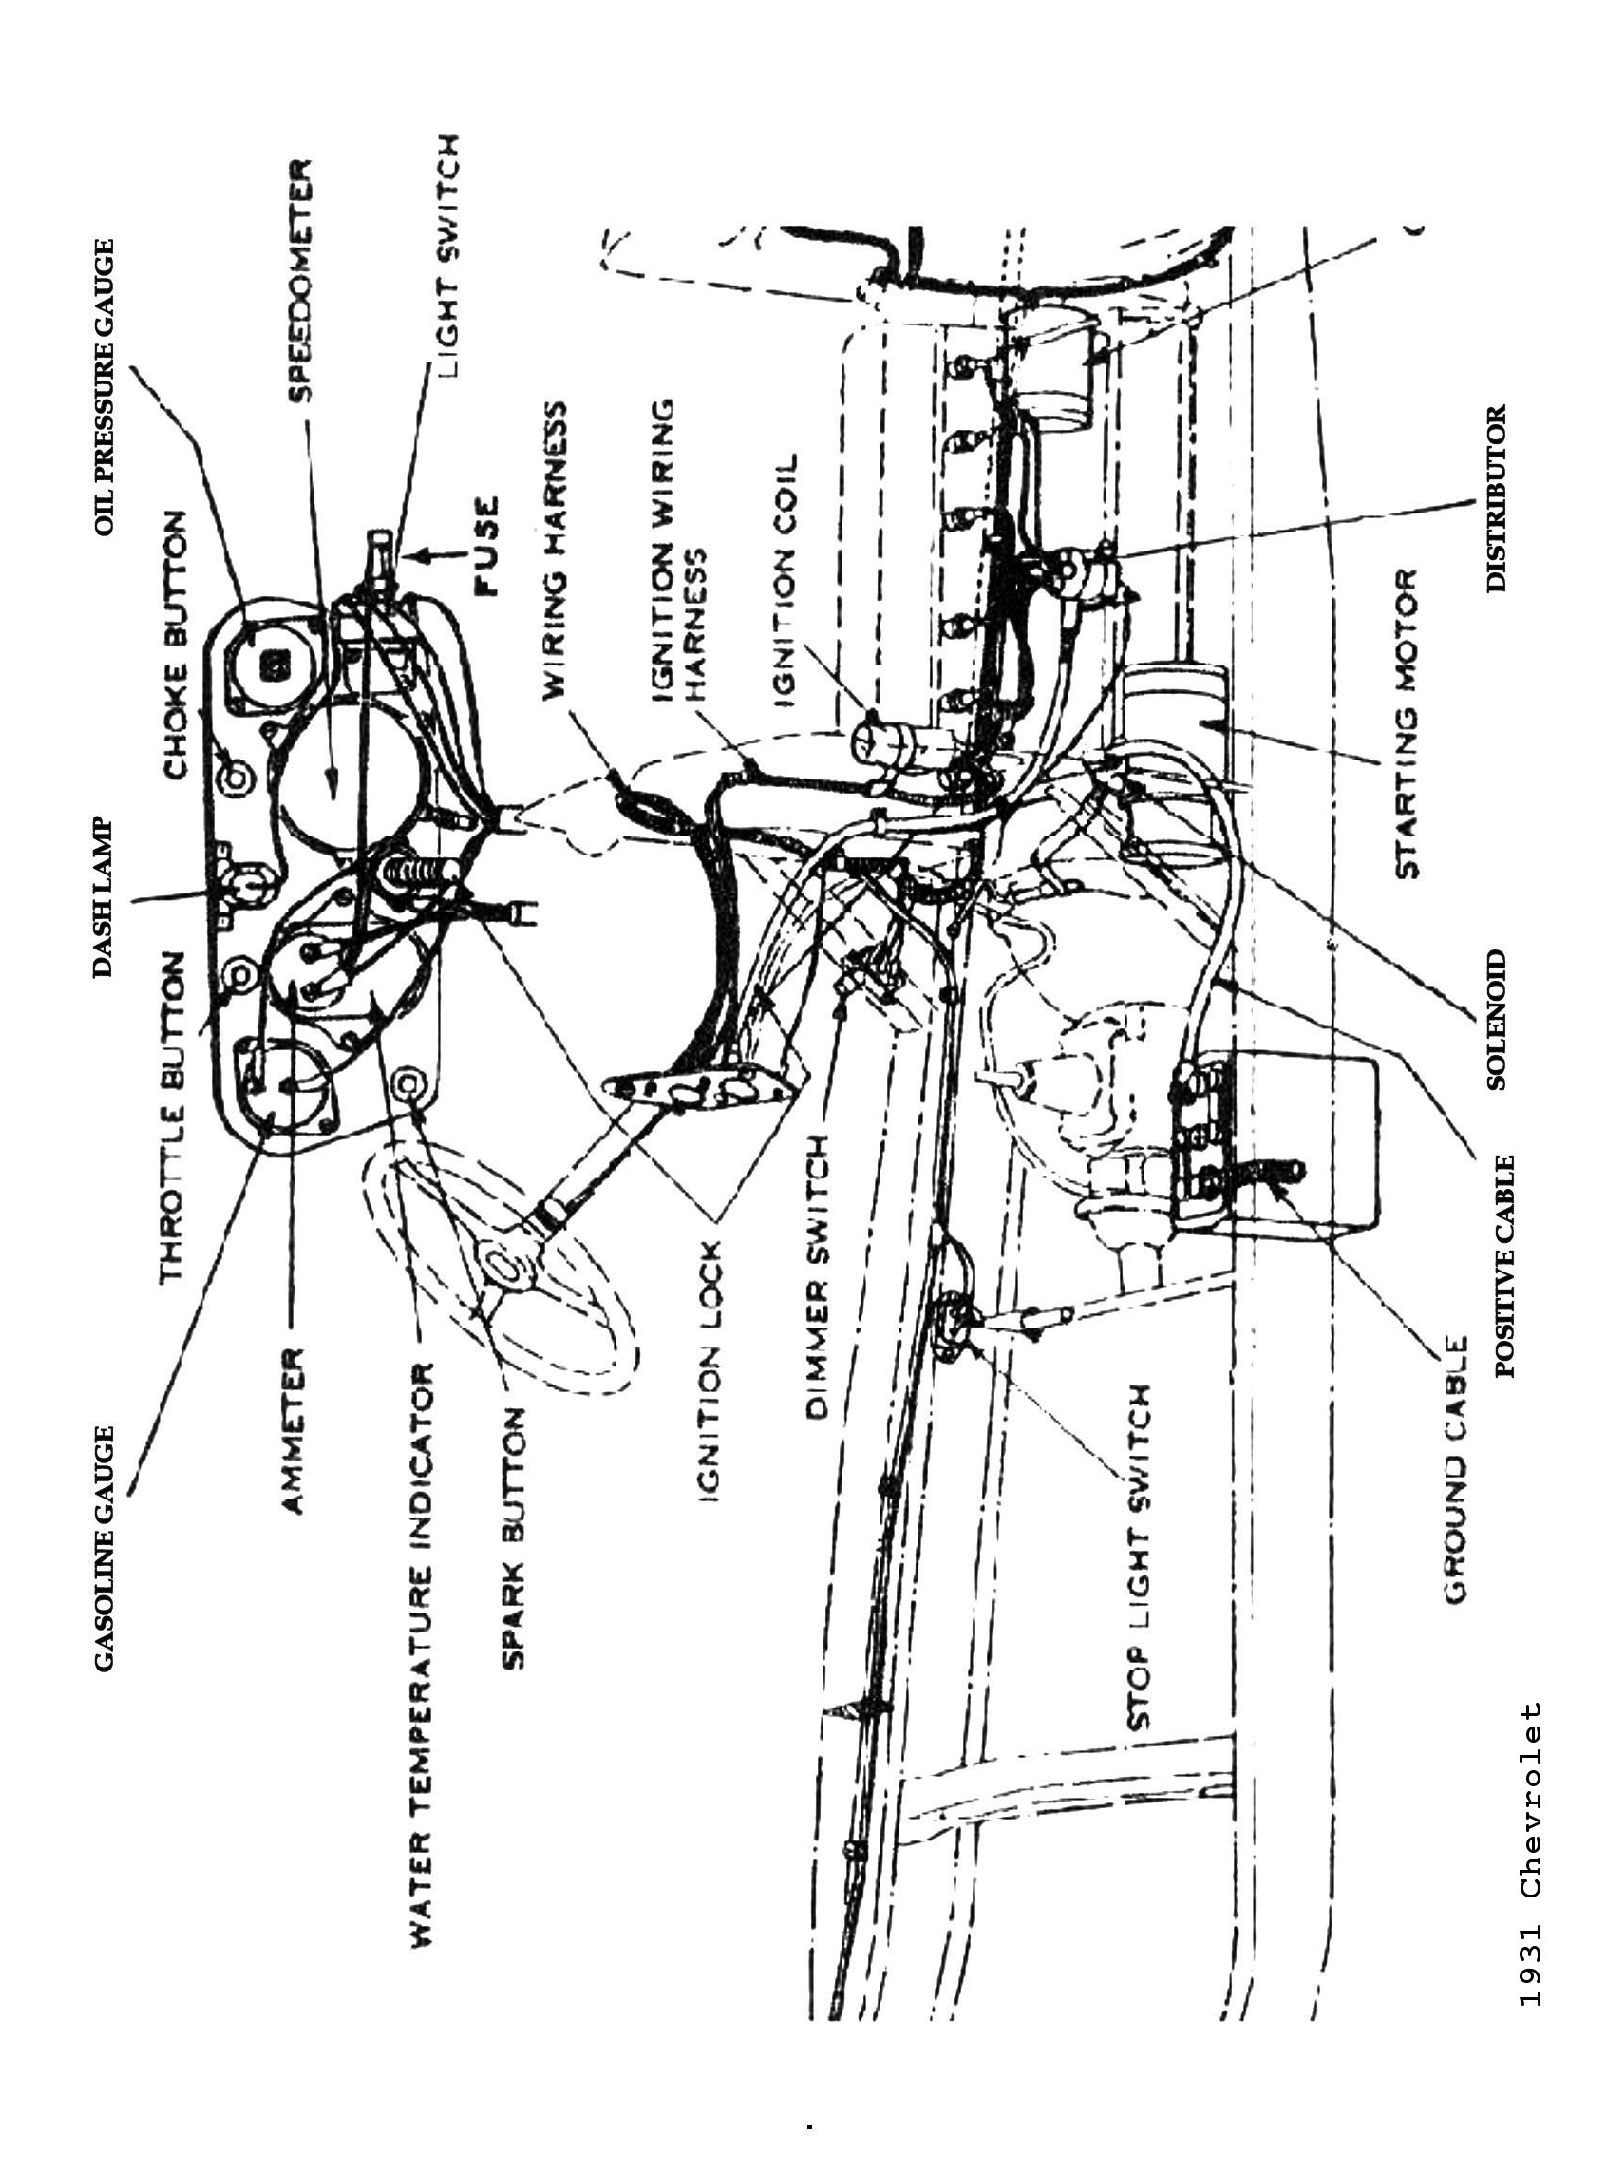 31harness chevy wiring diagrams Ford F-150 Wire Schematics at gsmportal.co